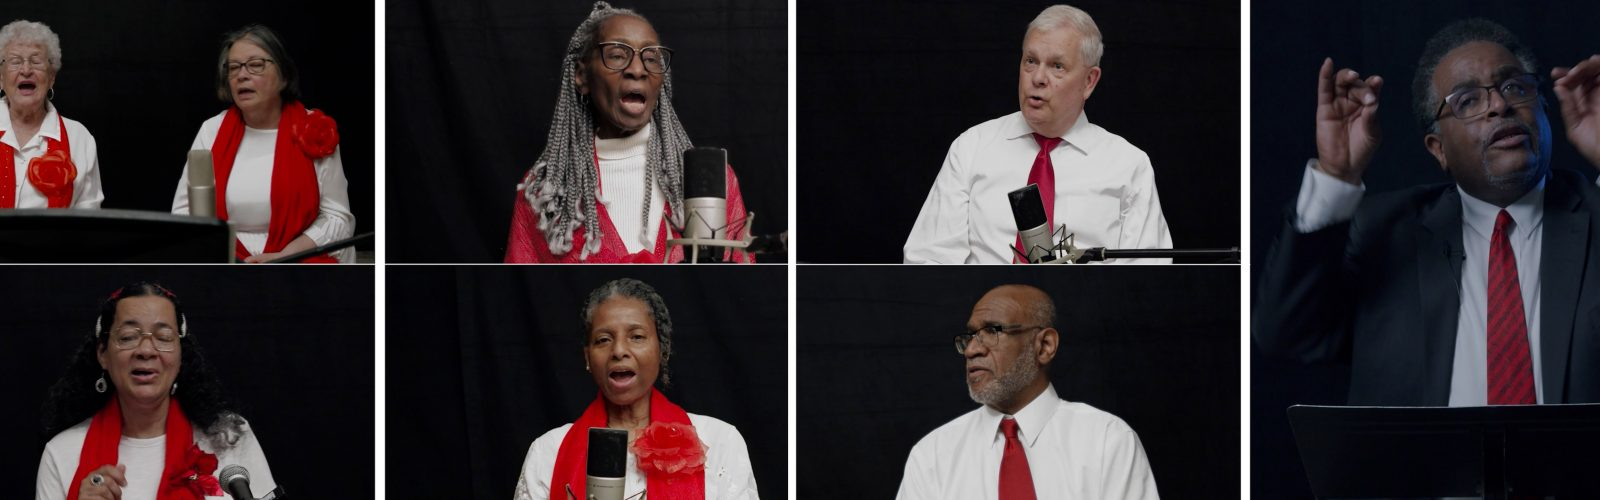 Chorus members sing in a virtual concert wearing matching red scarves and white shirts